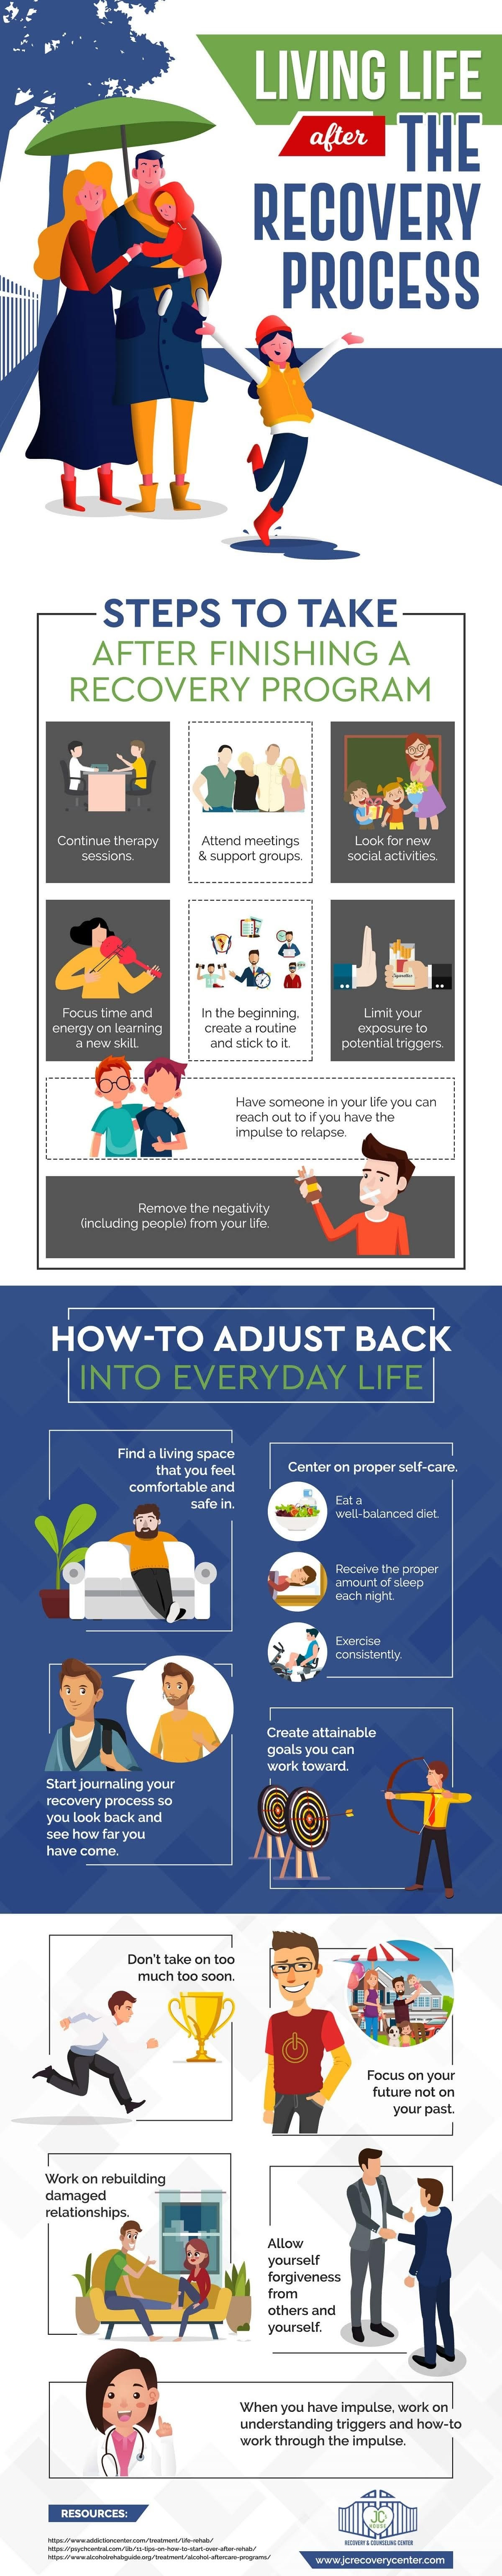 Life After the Recovery Process #infographic